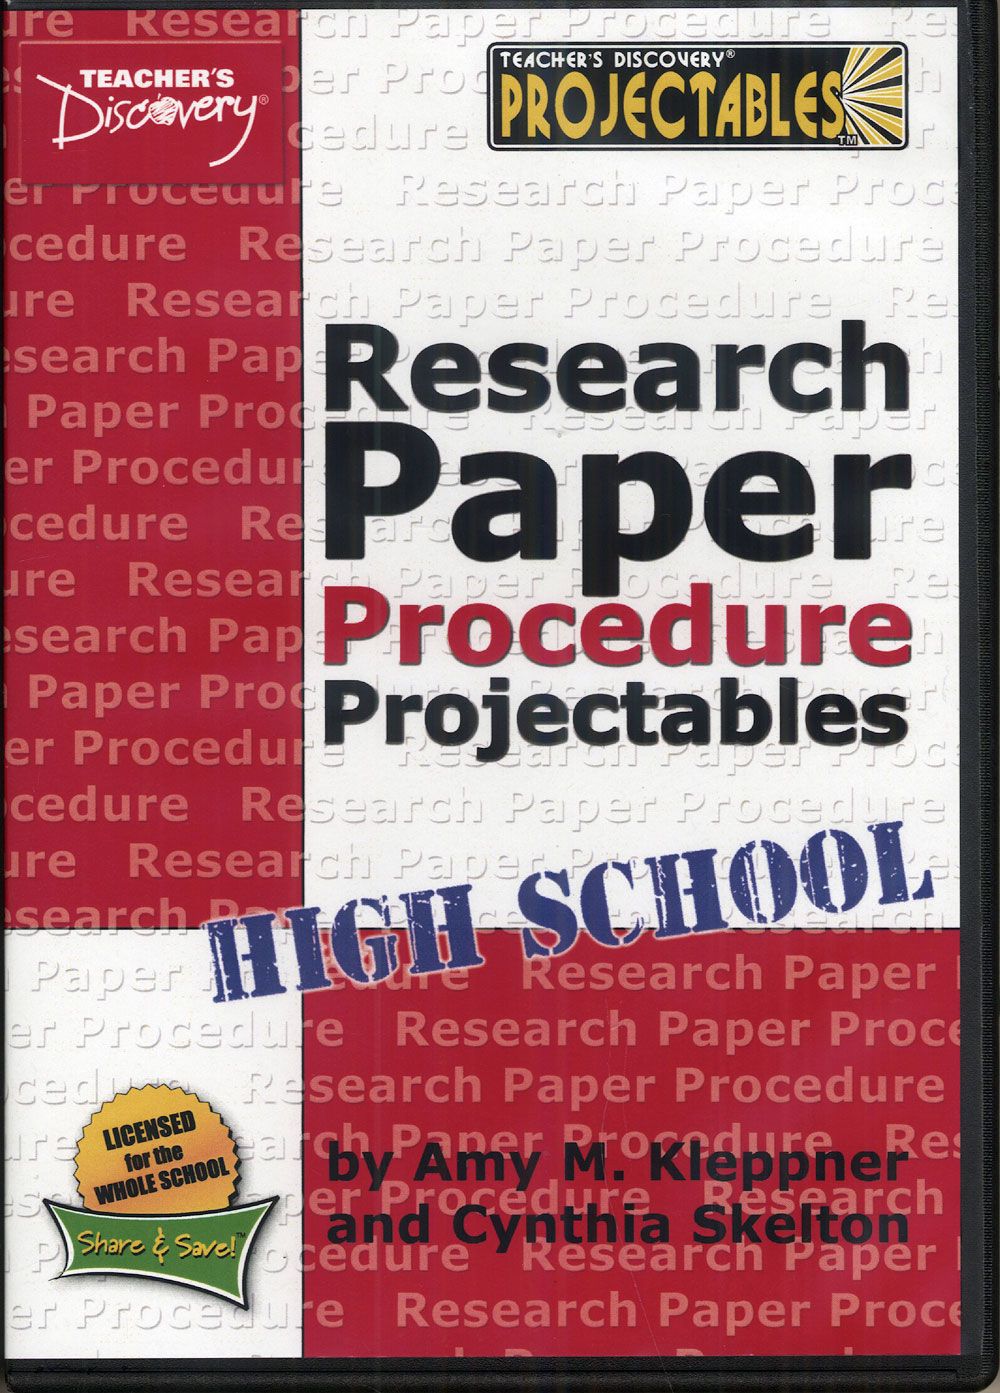 Research Paper Procedure Projectables™